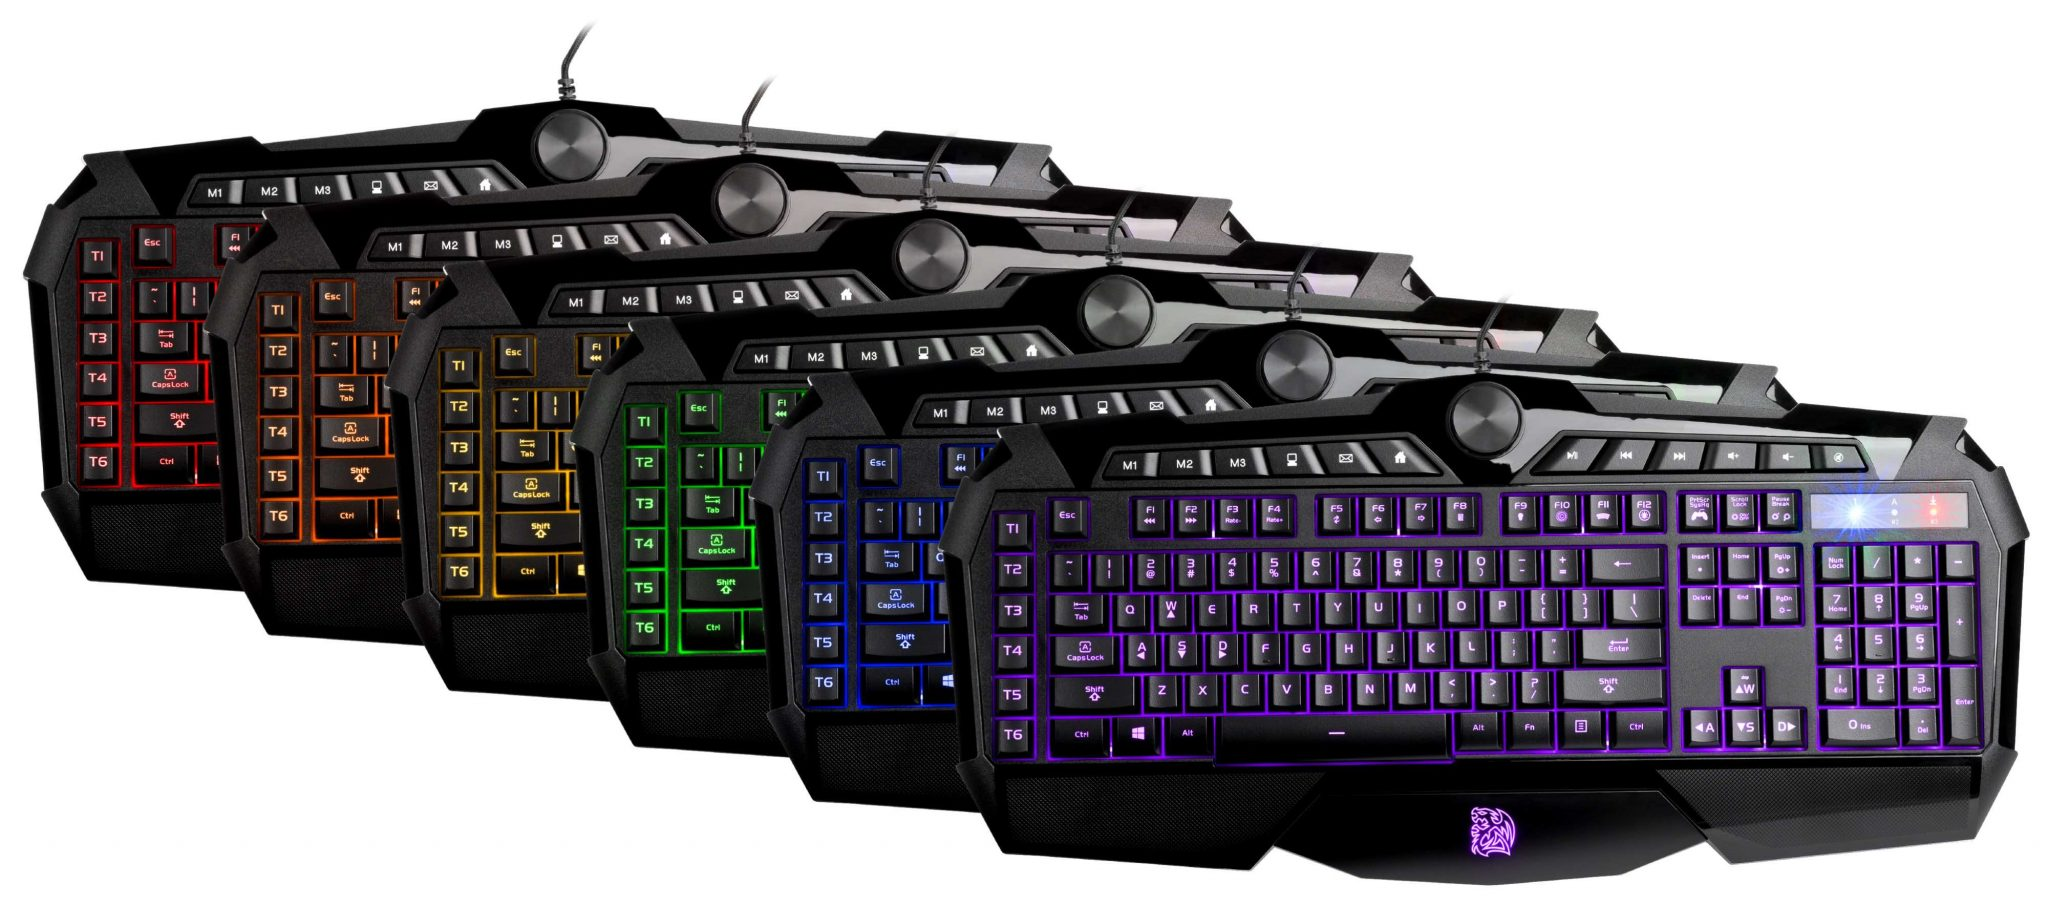 Tt eSPORTS CHALLENGER Prime RGB_Keyboard Combination